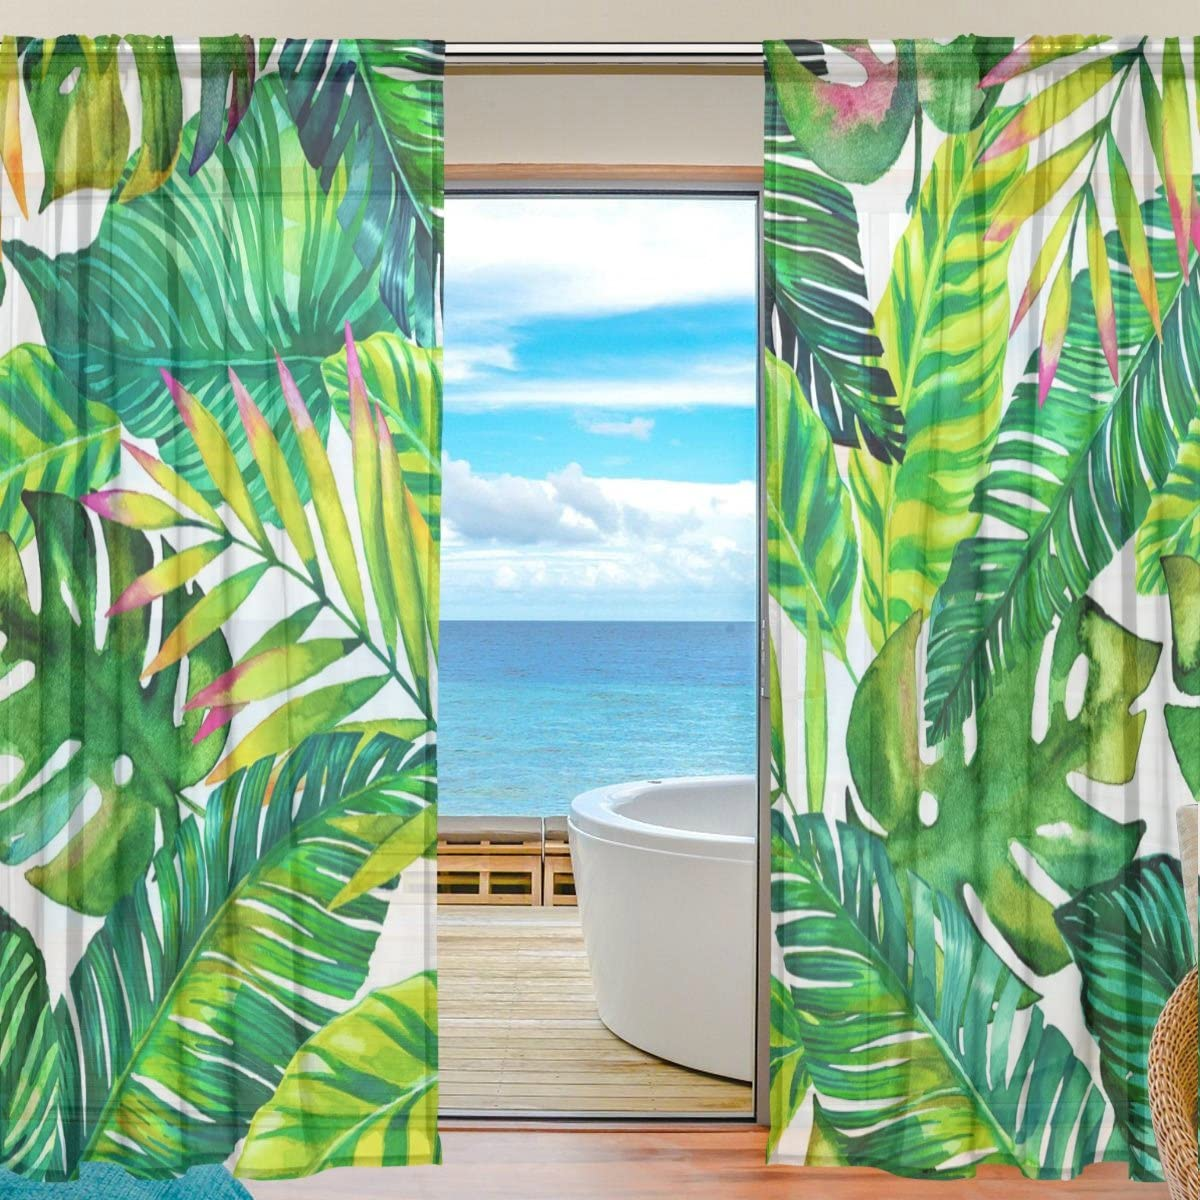 SEULIFE Window Sheer Curtain Tropical Hawaiian Palm Leaves Pattern Print Voile Curtain Drapes for Door Kitchen Living Room Bedroom 55×78 inches 2 Panels